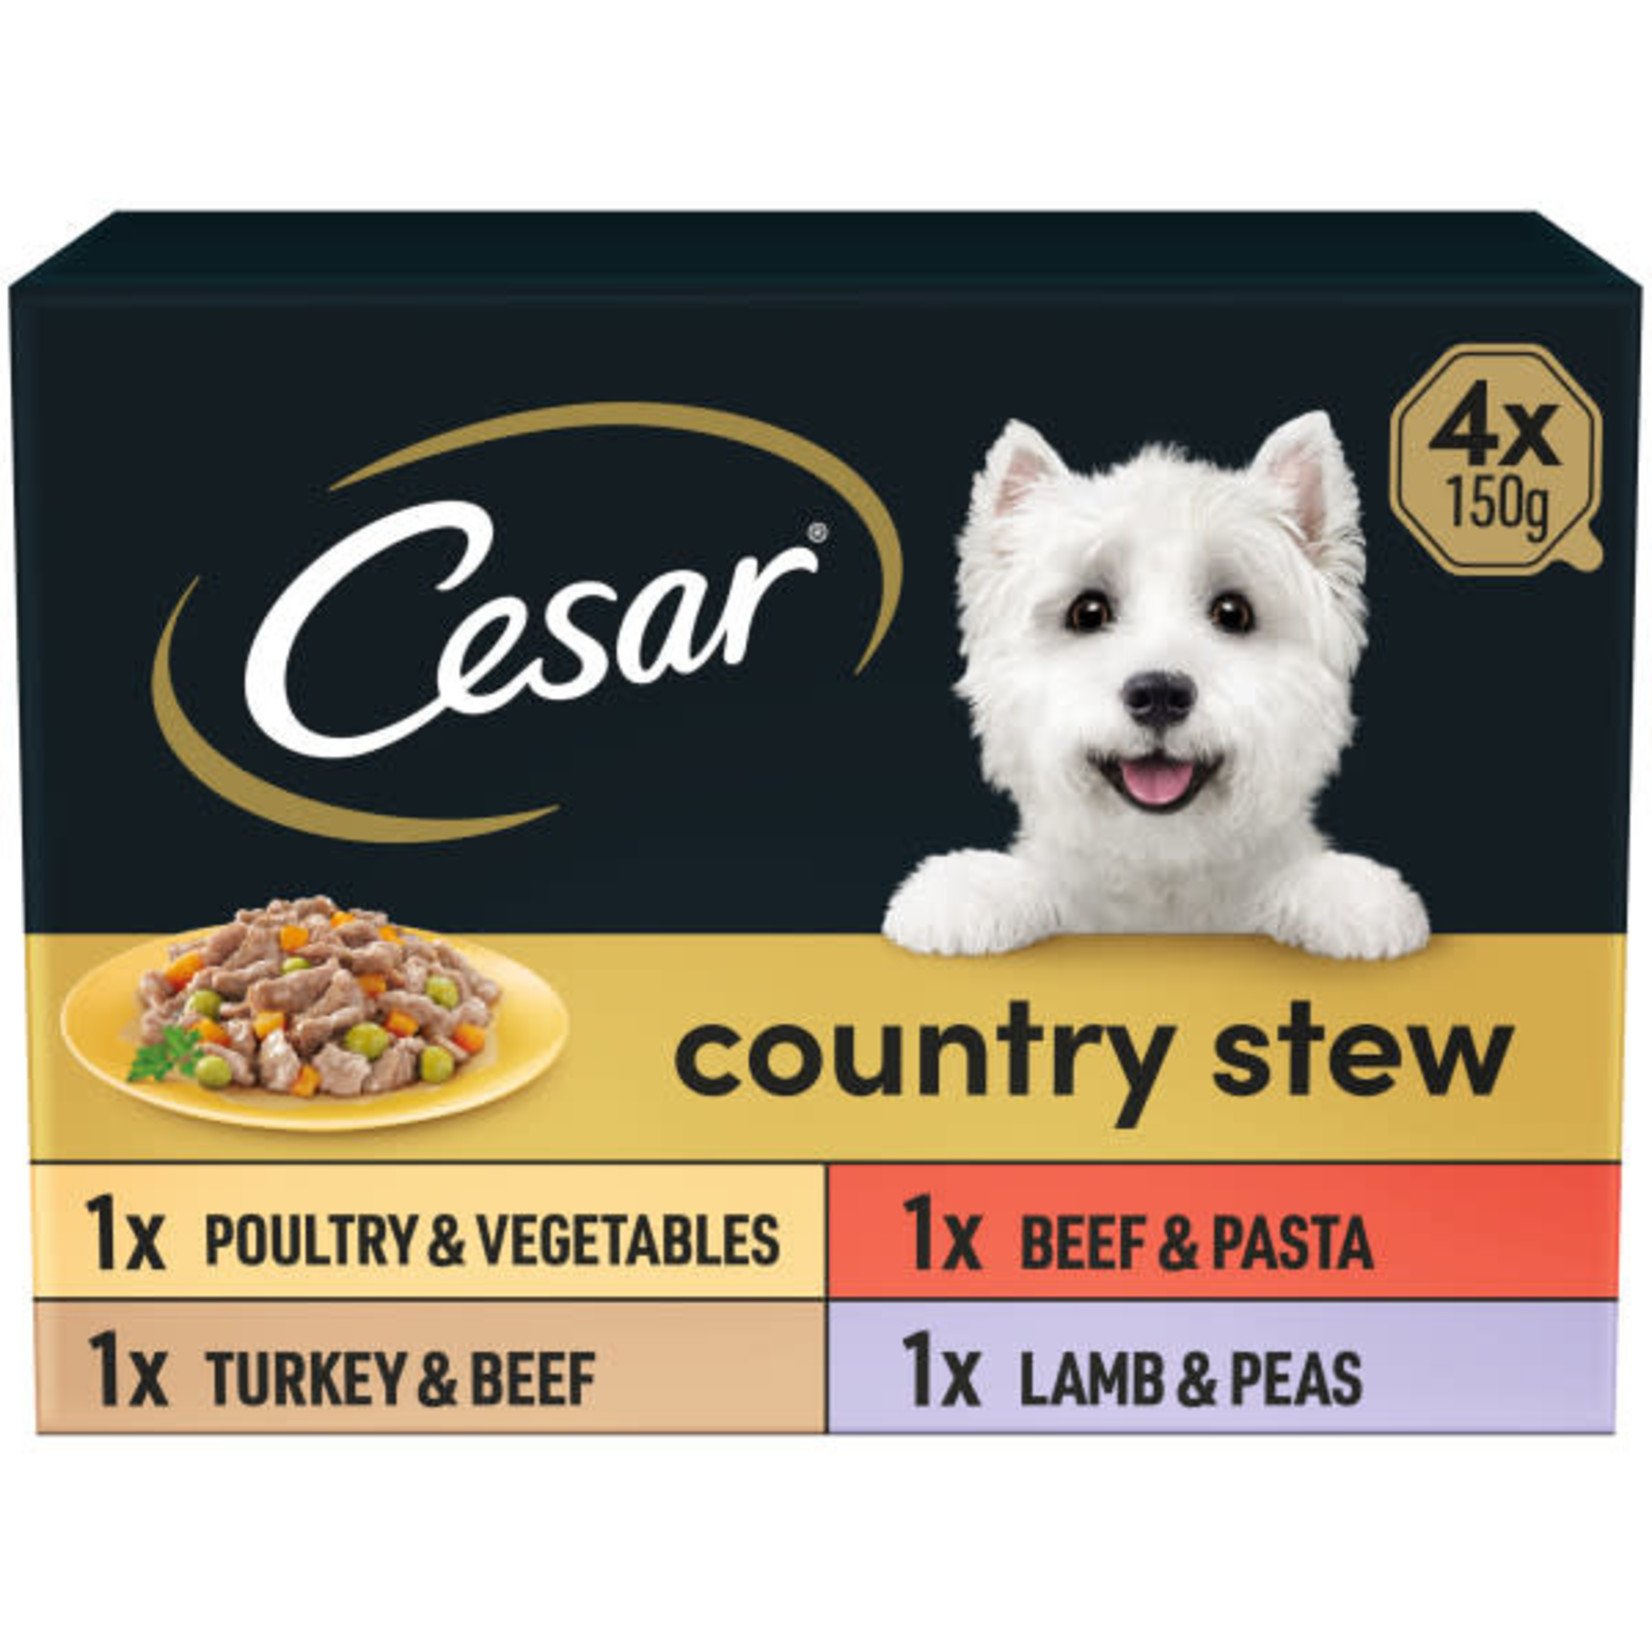 Cesar Adult Dog Wet Food Tray Country Stew Selection, 4 x 150g